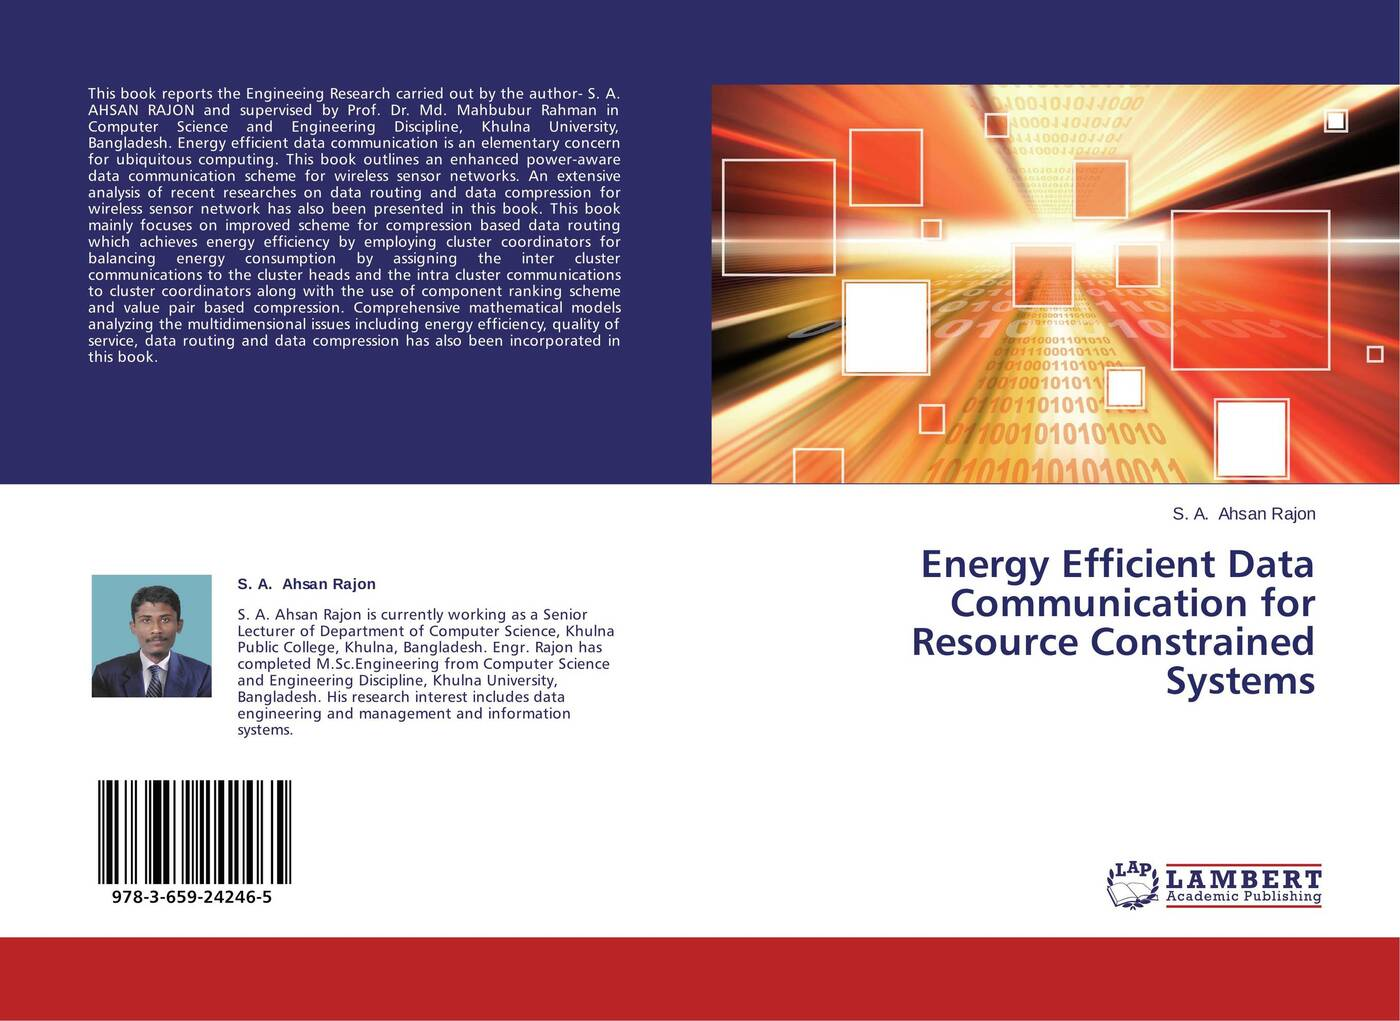 S. A. Ahsan Rajon Energy Efficient Data Communication for Resource Constrained Systems huawei q1 routing cluster set wireless intelligent router